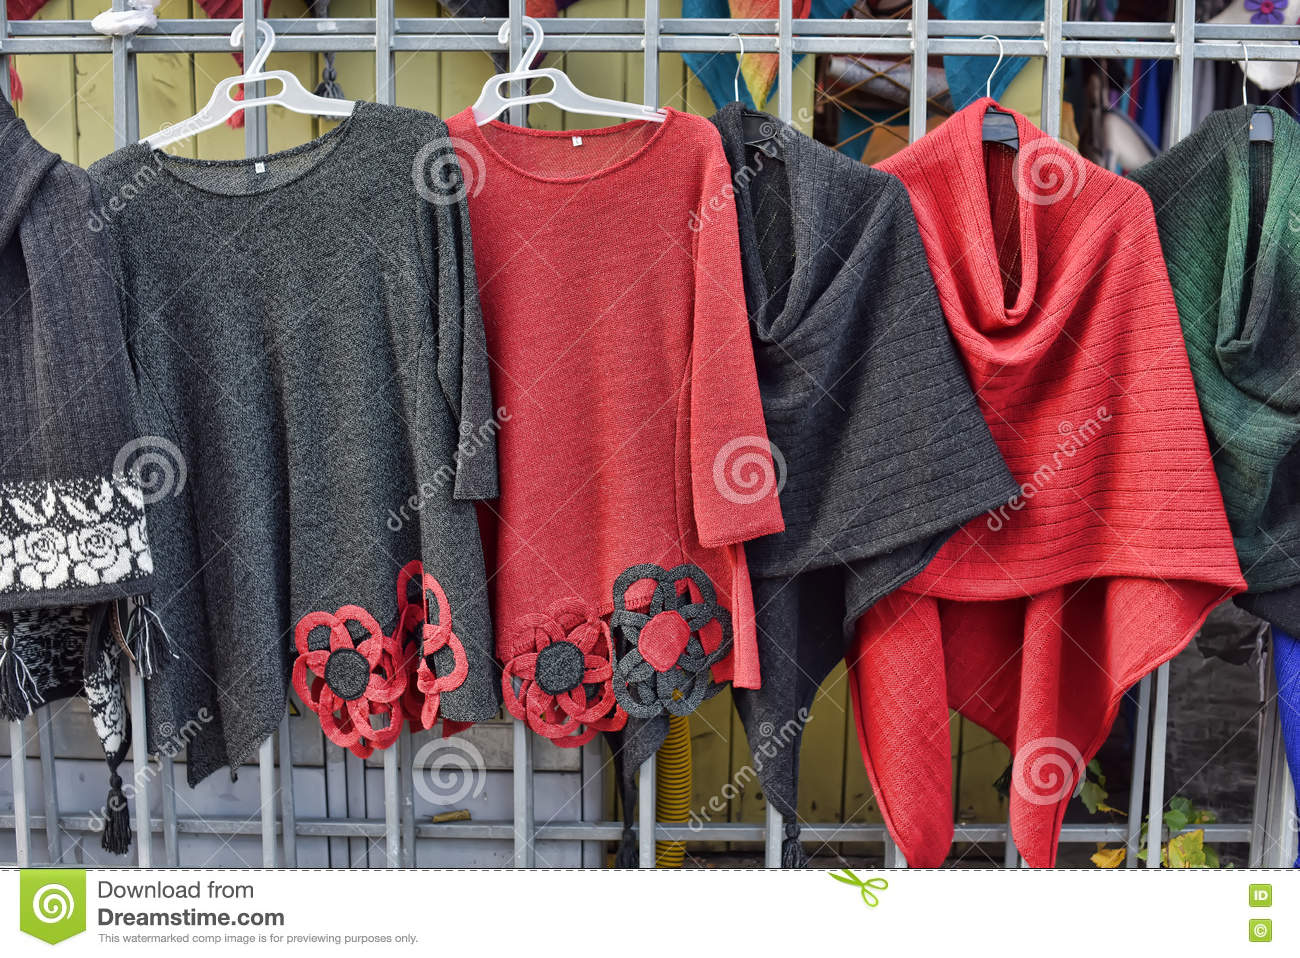 Woolen Hand Knitted Clothes In Tallinn,Estonia Stock Image - Image